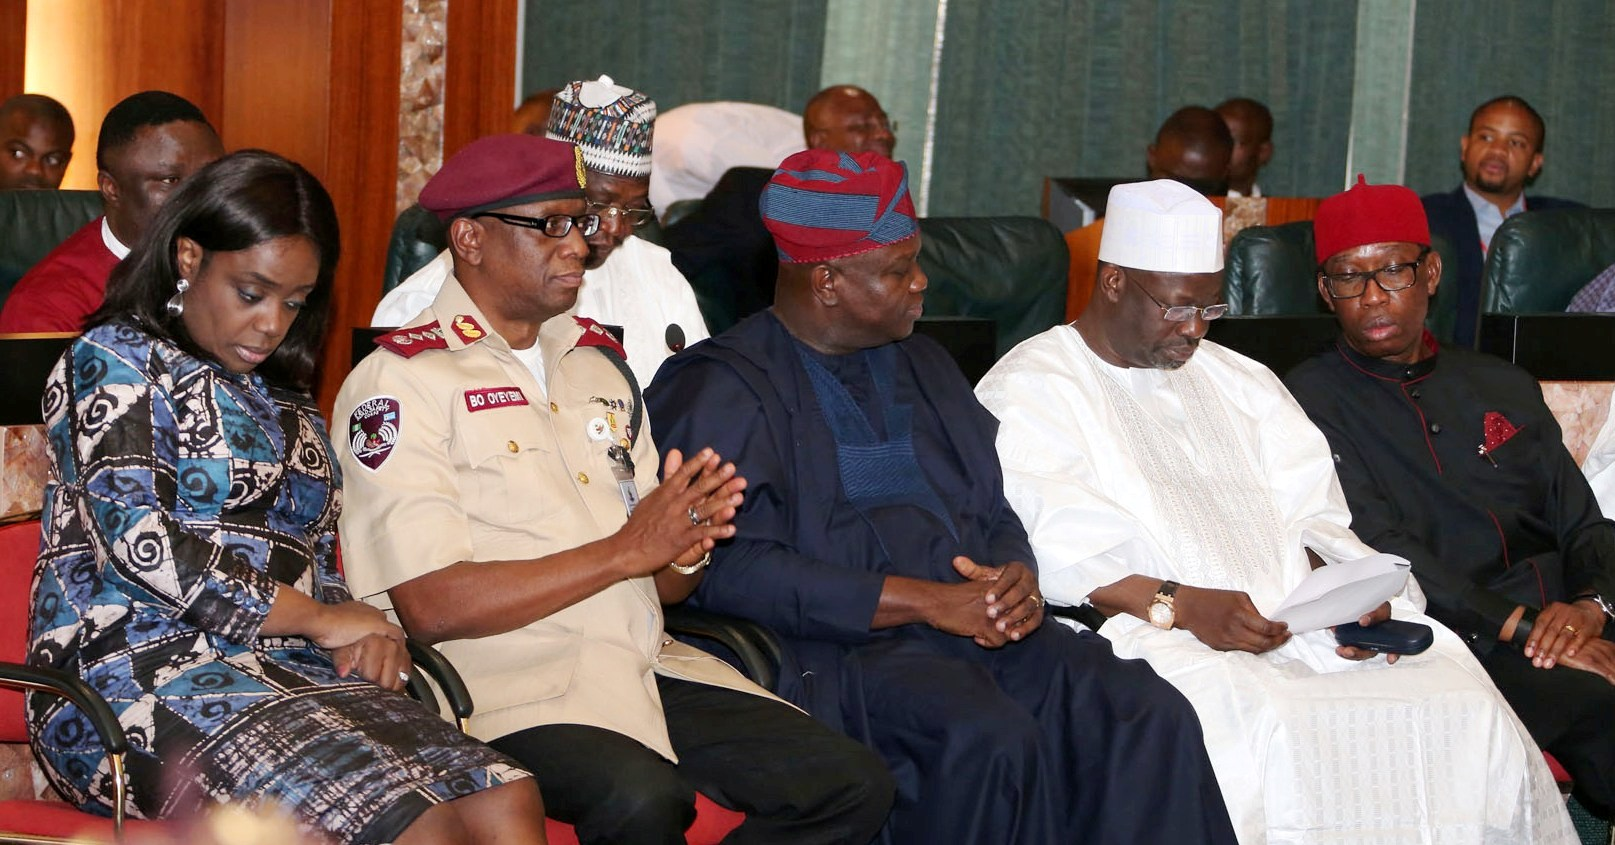 Lagos State Governor & representative of South West Zone on National Road Safety Advisory Council (NARSAC), Mr. Akinwunmi Ambode (middle), with his Gombe and Delta States counterpart, Governor Ibrahim Dankwambo (2nd right), Governor Ifeanyi Okowa (right); Corp Marshal/Chief Executive, Federal Road Safety Corps (FRSC), Mr. Boboye Oyeyemi (2nd left) and Minister of Finance, Mrs. Kemi Adeosun (left) during the inauguration of NARSAC at the Council Chamber, State House, Abuja, on Thursday, February 16, 2017.